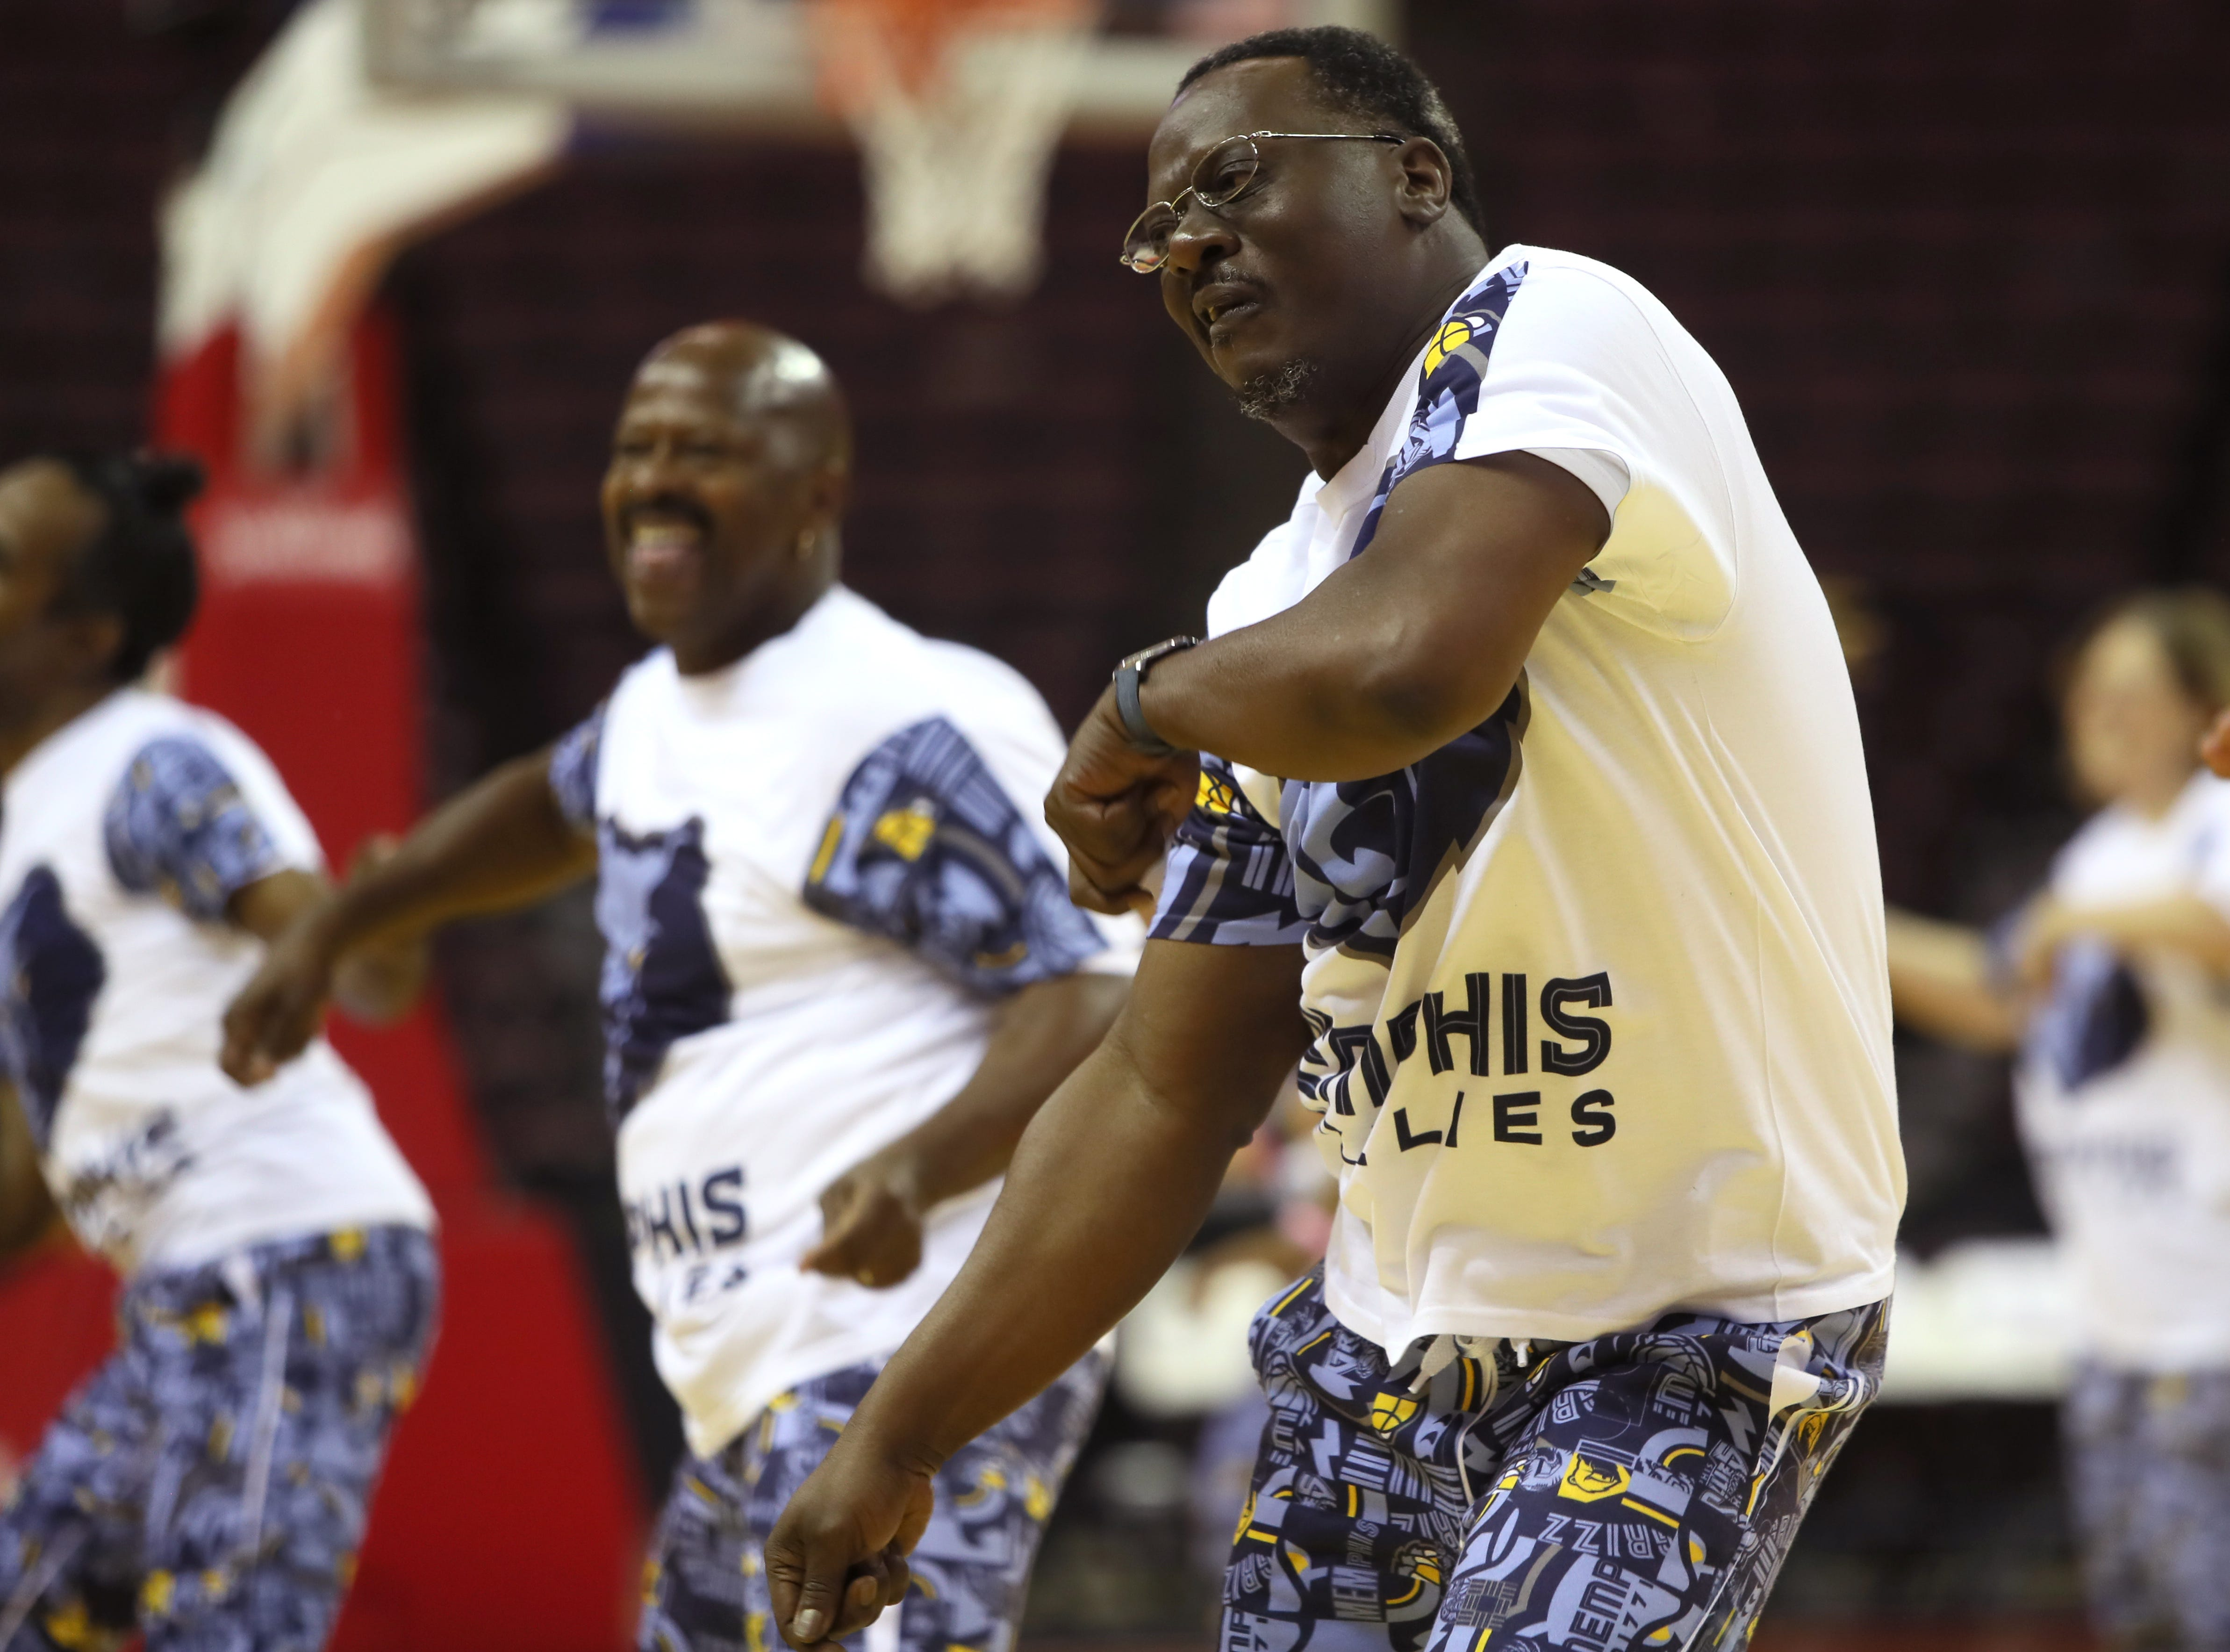 The Grizzlies Grannies and Grandpas put on a dance show during the Memphis Hustle Family Fun Day at the Landers Center on Sunday, Oct. 28, 2018.